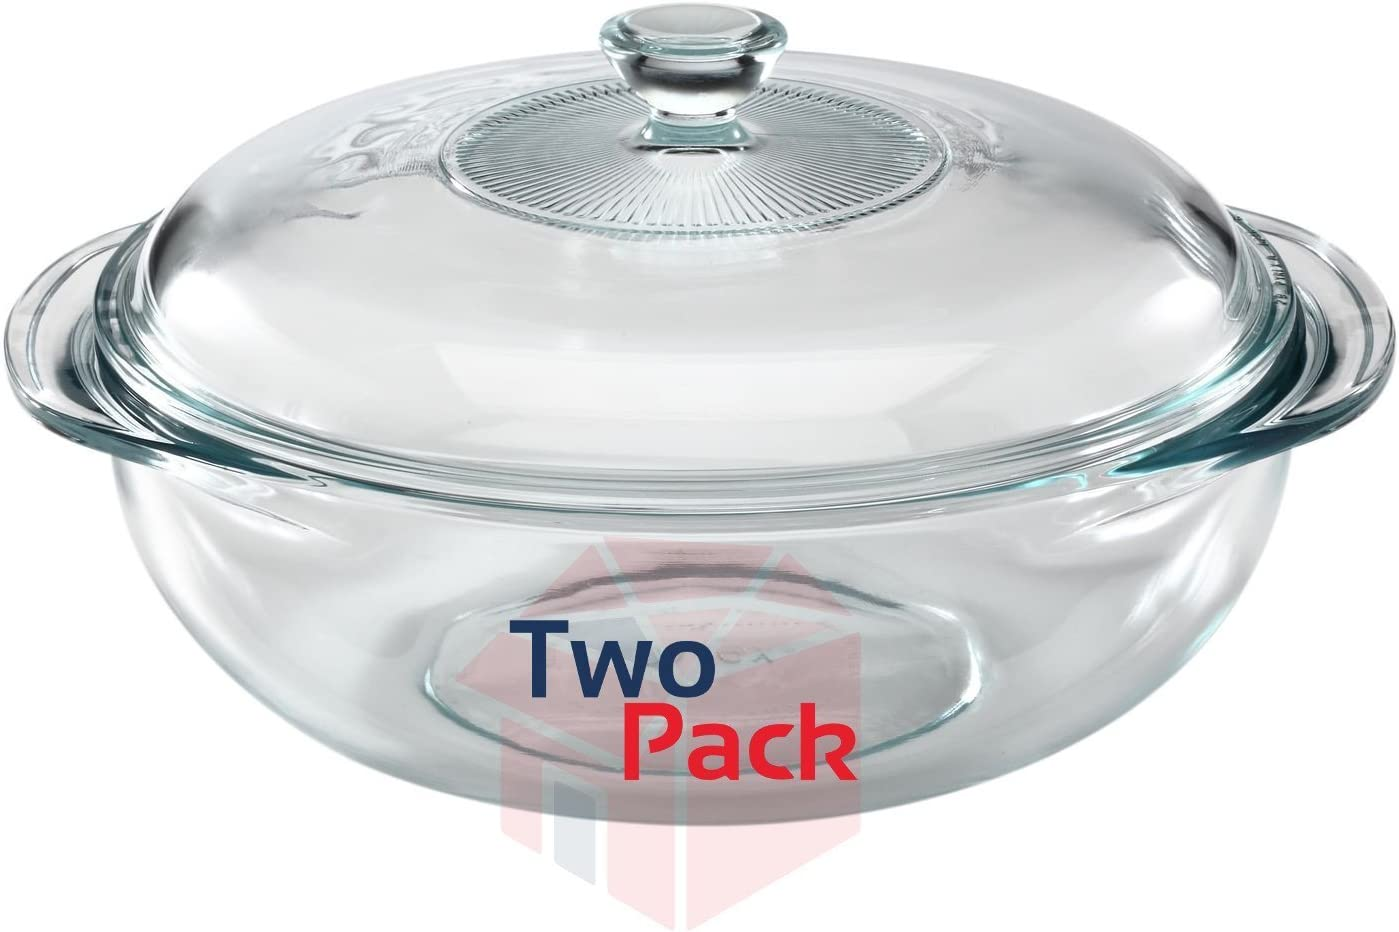 2-pack-oven-proof-glassware-from-pyrex